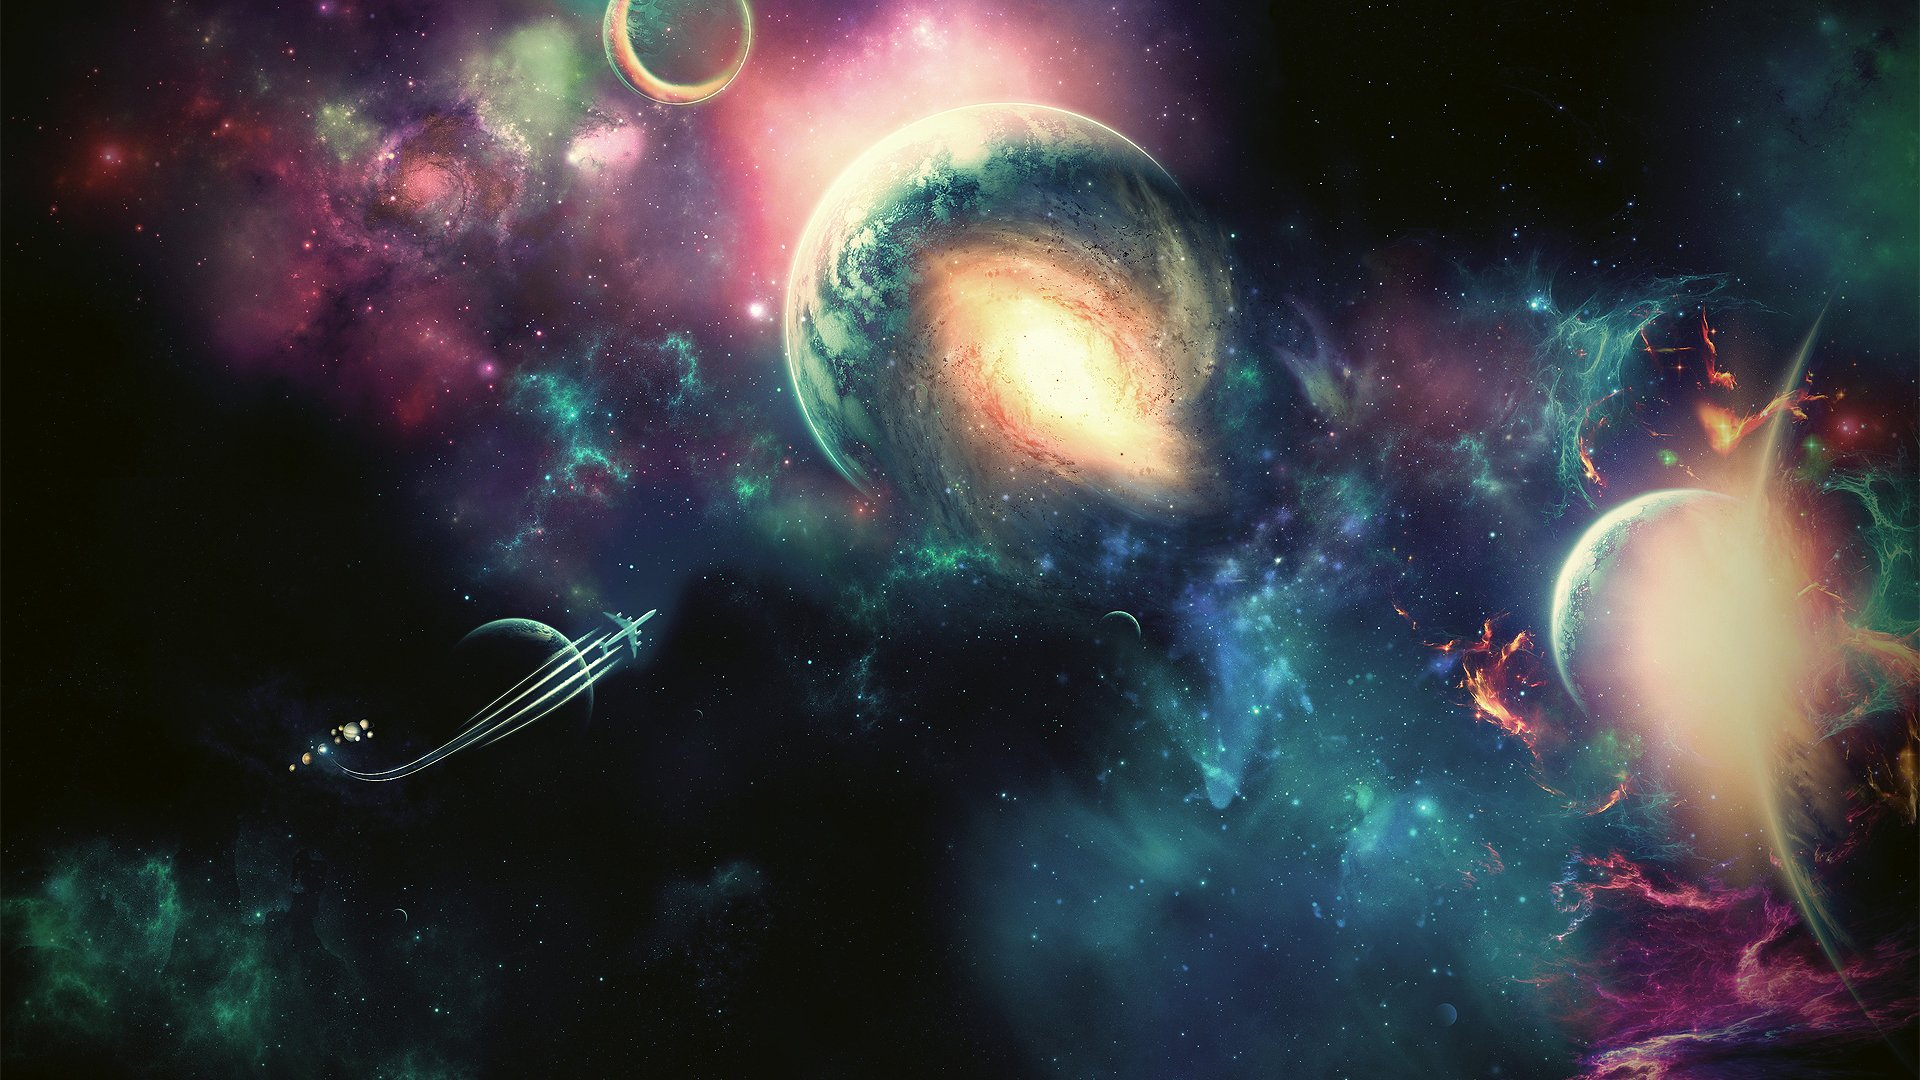 Space HD wallpaper 1920x1080 41   hebusorg   High Definition 1920x1080